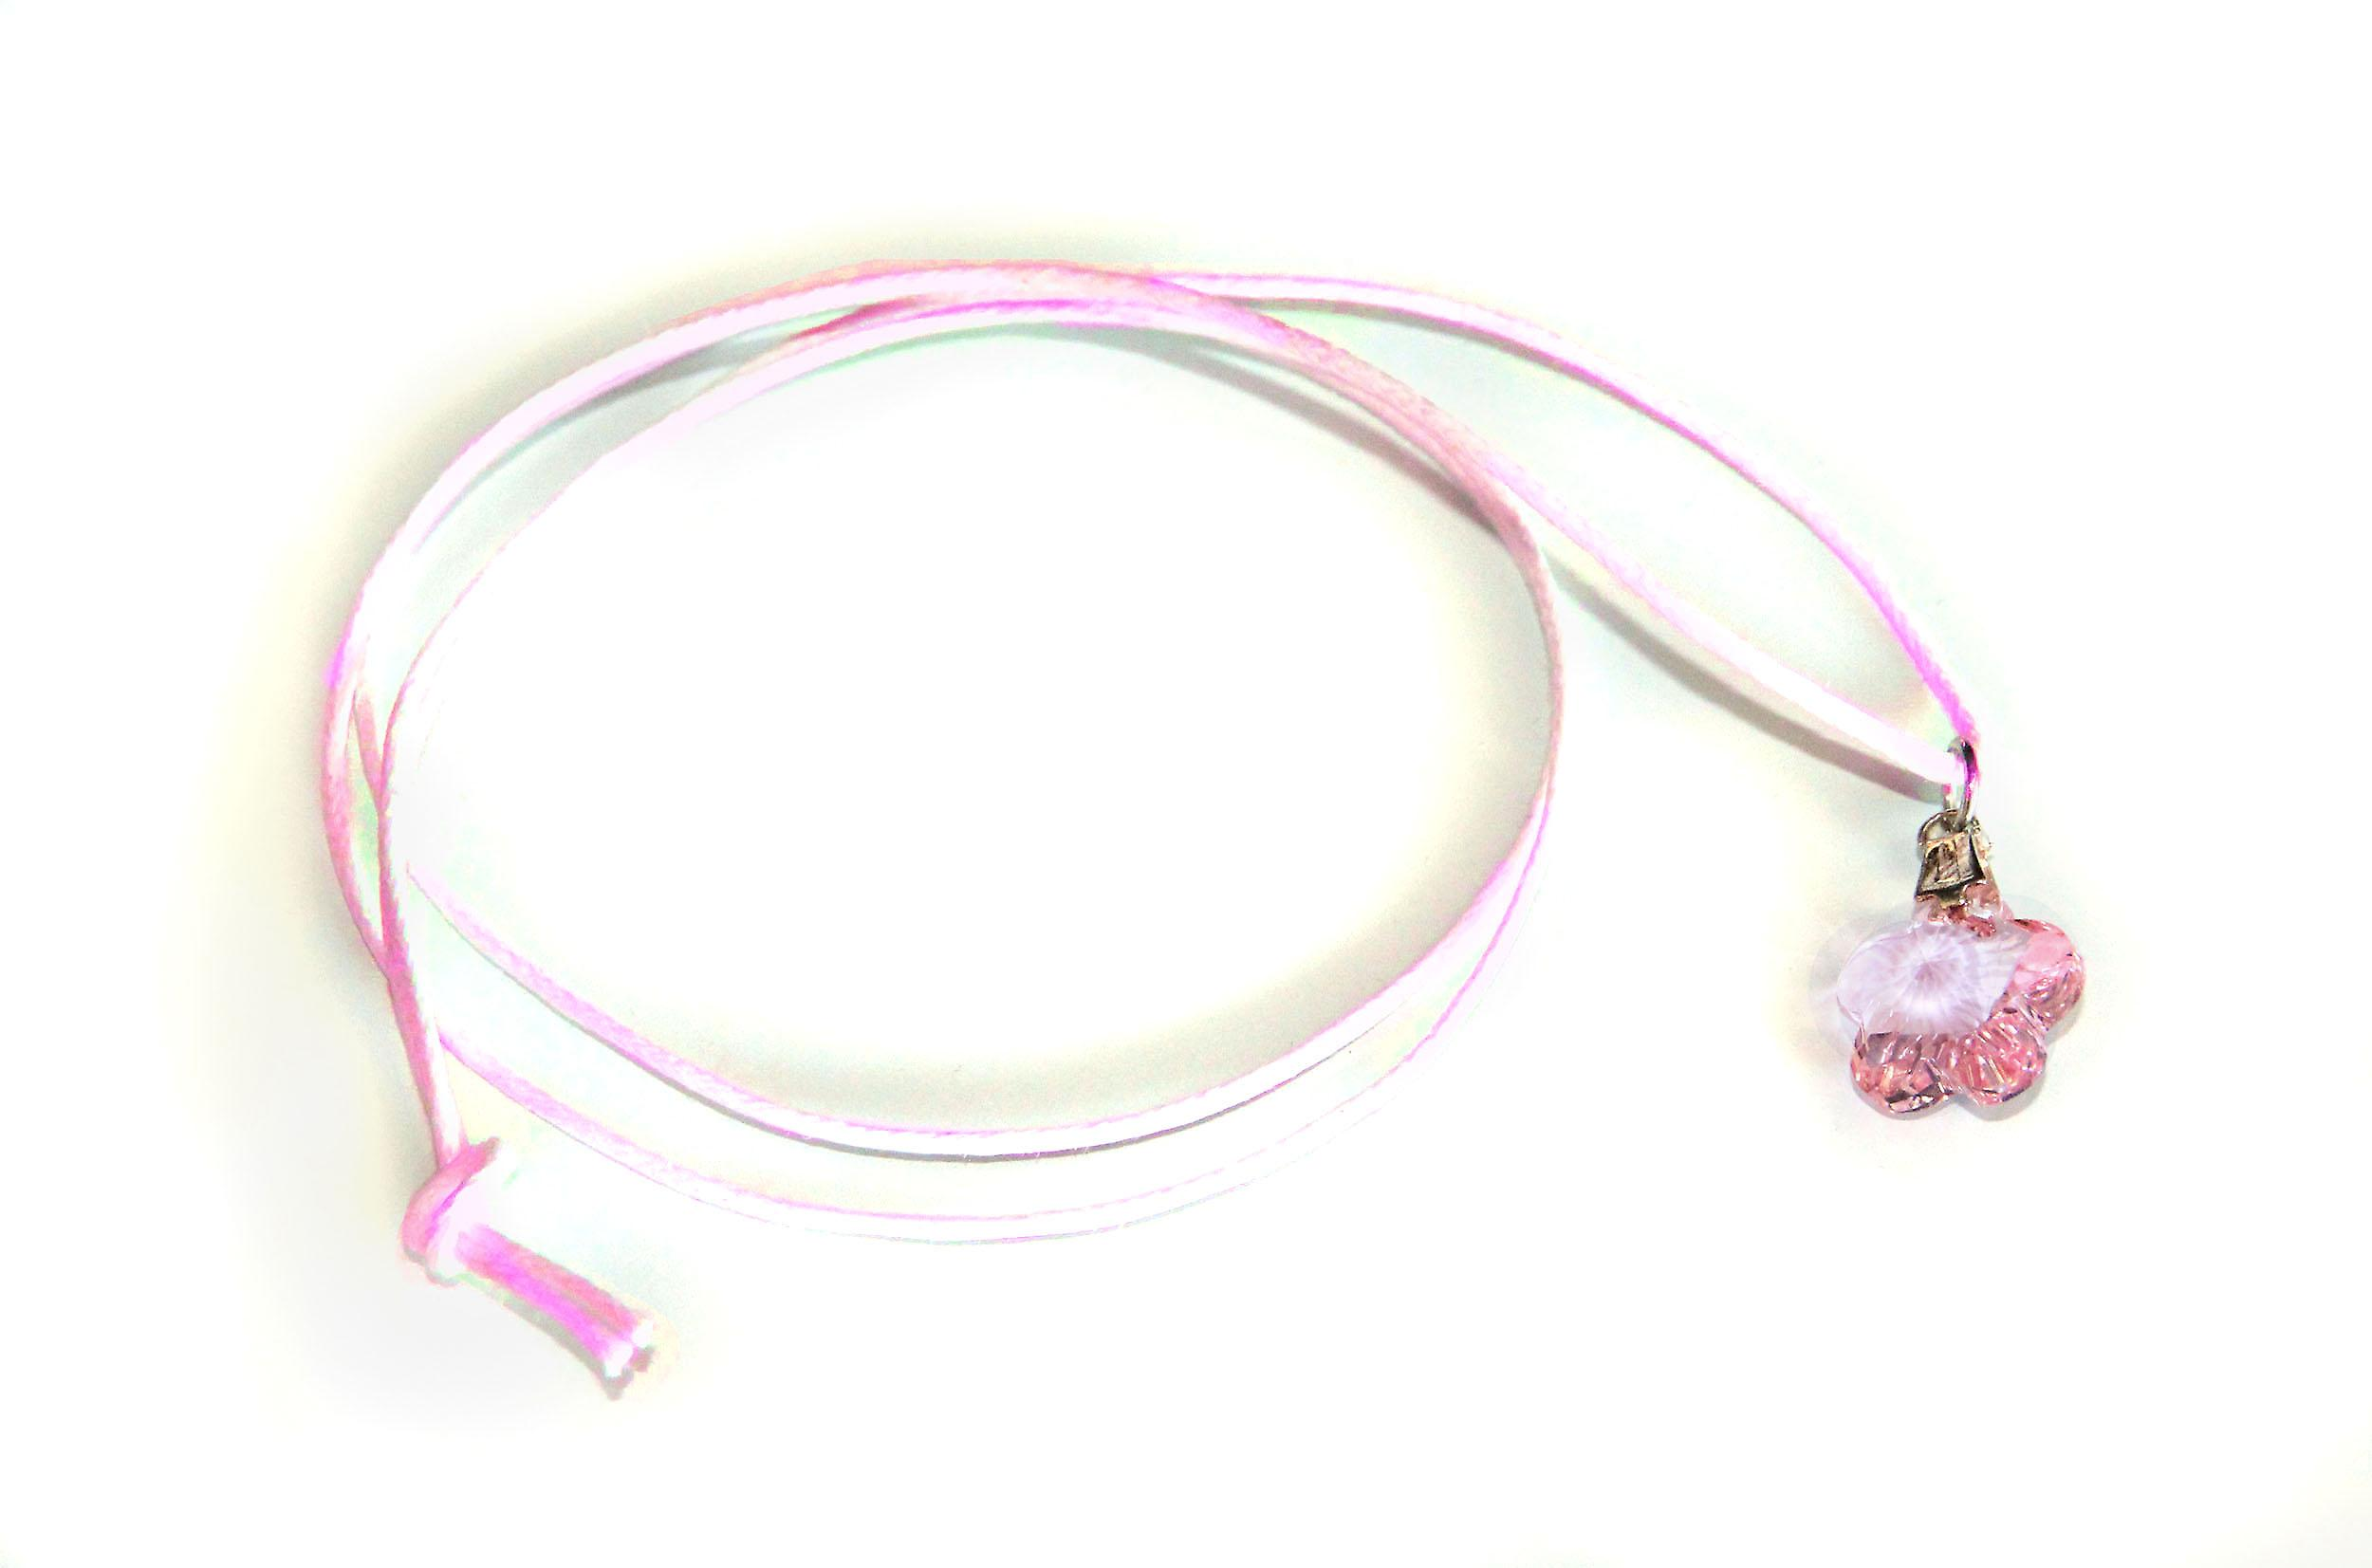 Waooh - Jewelry - Swarovski / pendant Pink flower and waxed cord